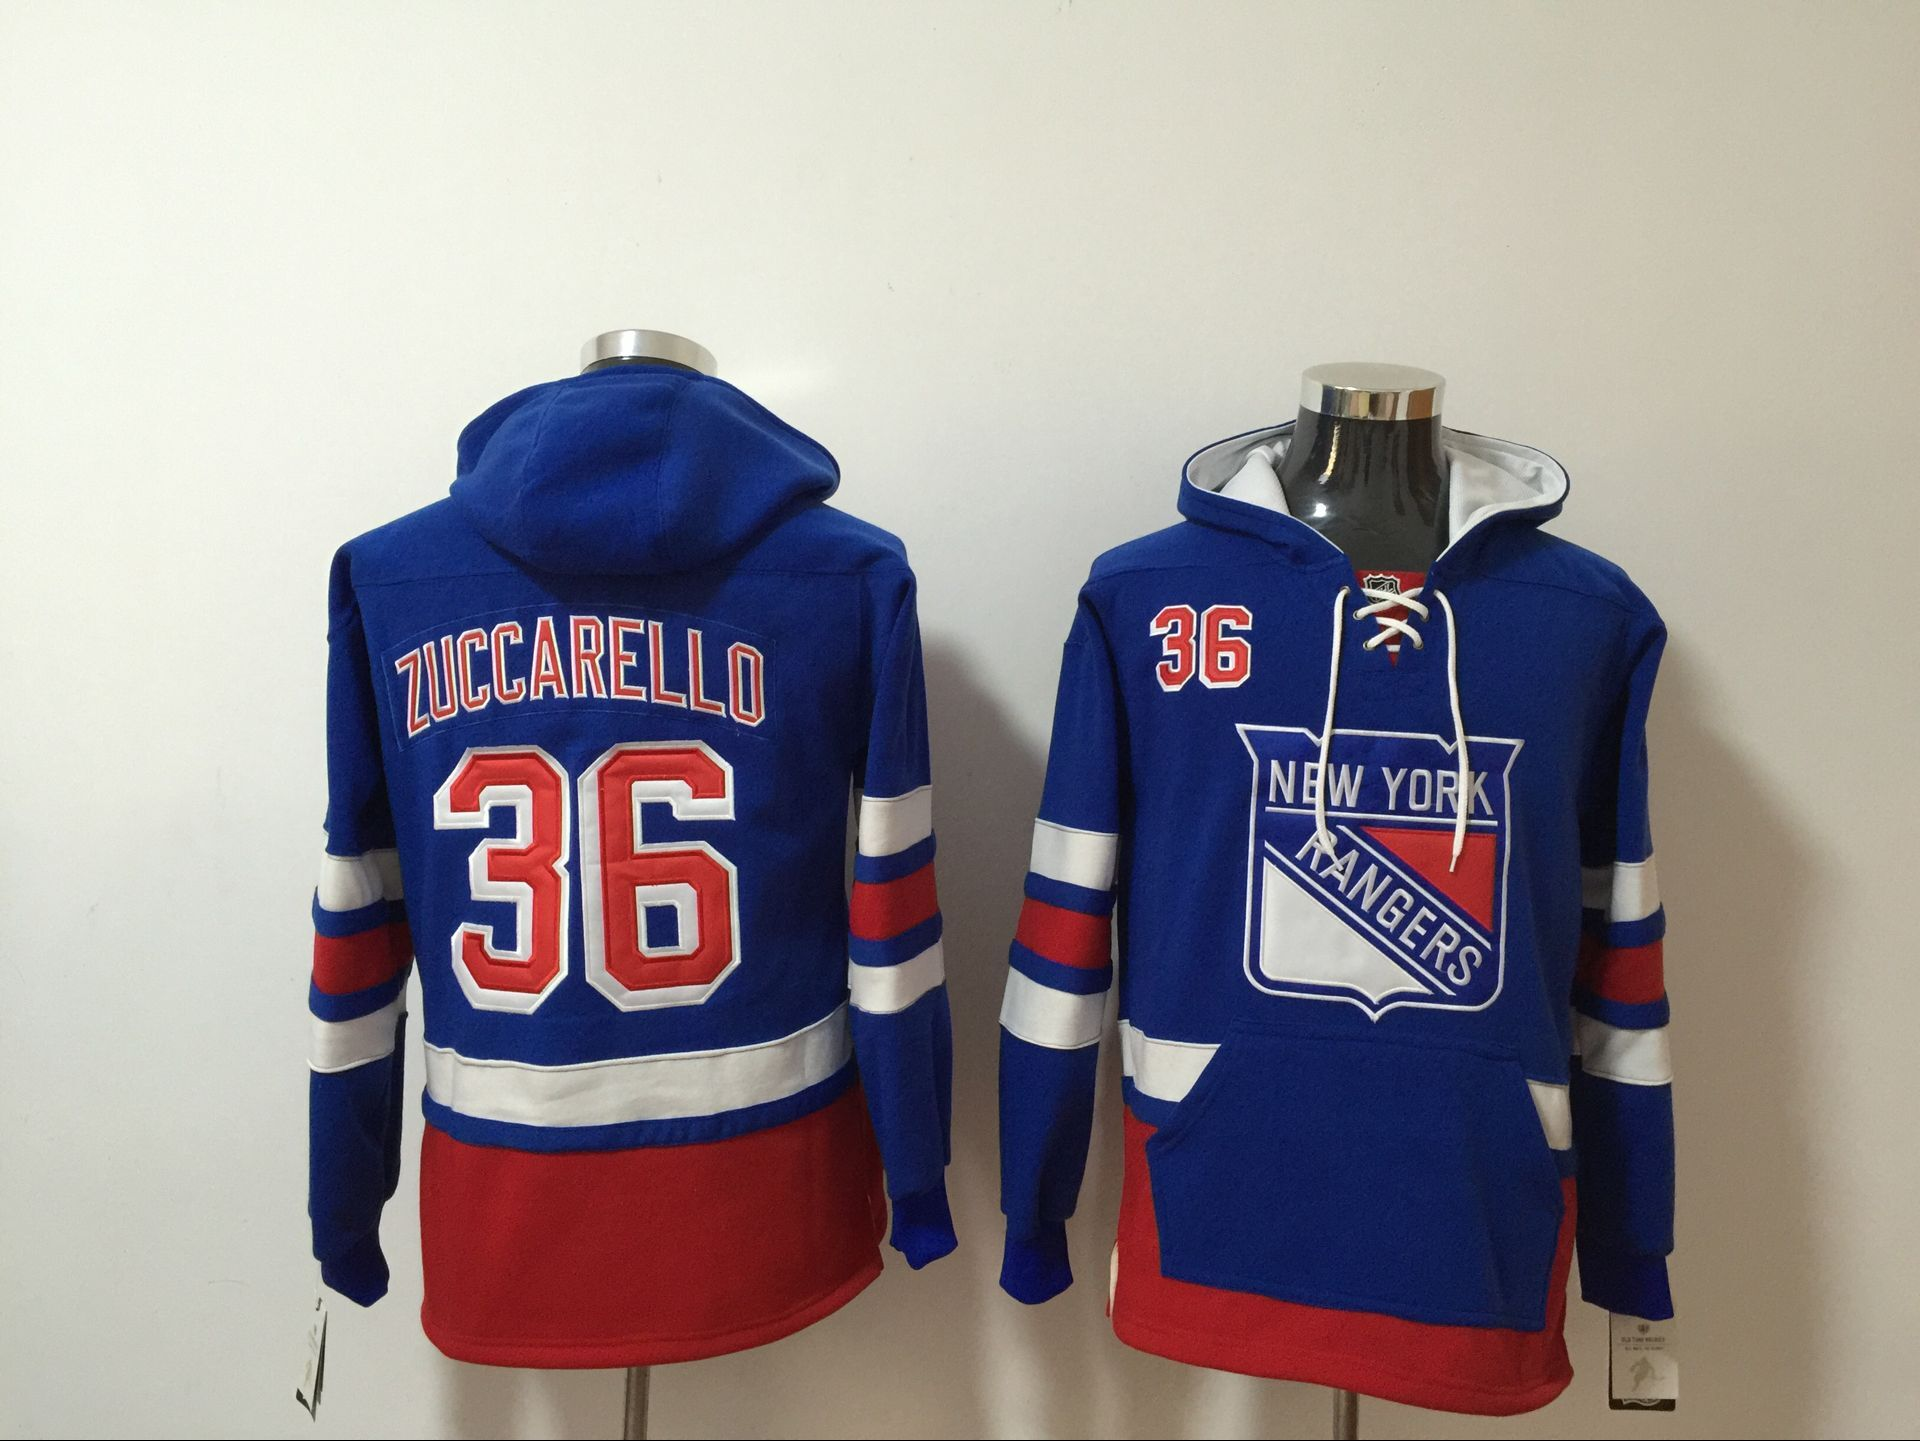 Rangers 36 Mats Zuccarello Royal All Stitched Hooded Sweatshirt